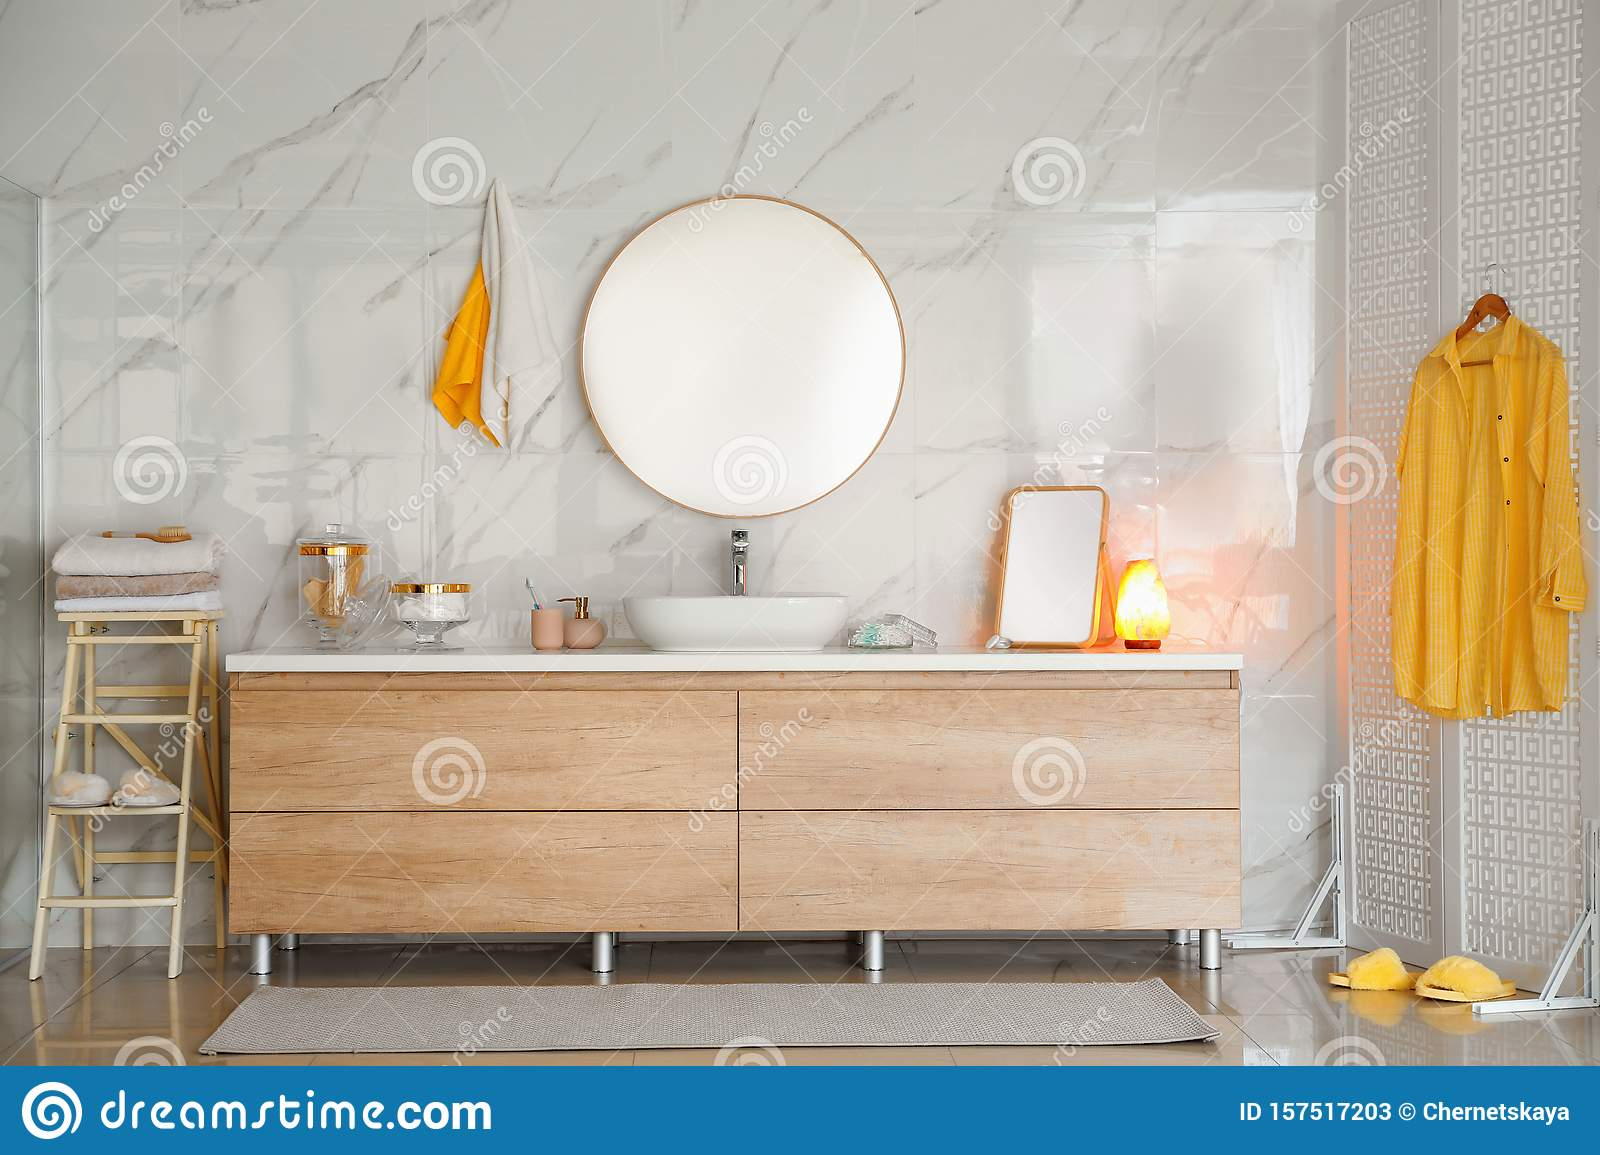 Picture of: Modern Bathroom Interior With Vessel Sink And Mirror Stock Image Image Of House Comfort 157517203